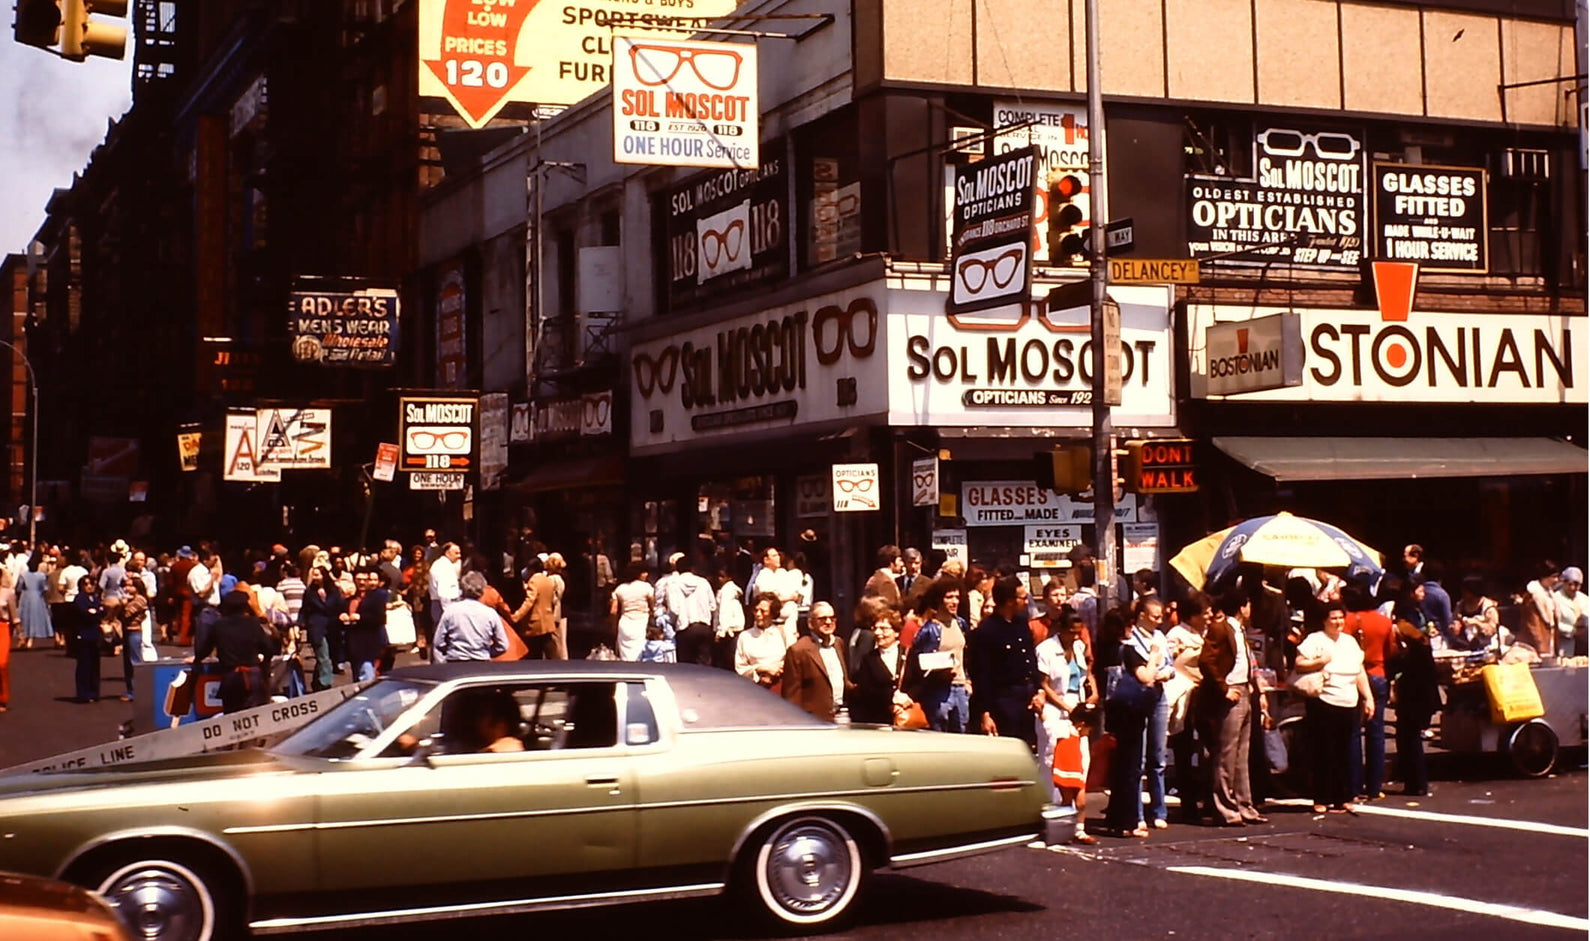 By the 1970s, MOSCOT expanded their 118 Orchard Shop to include the ground-level space below the retail shop. MOSCOT would continue to occupy the corner space, later hosting MOSCOT Music events, until their next big move in 2012.